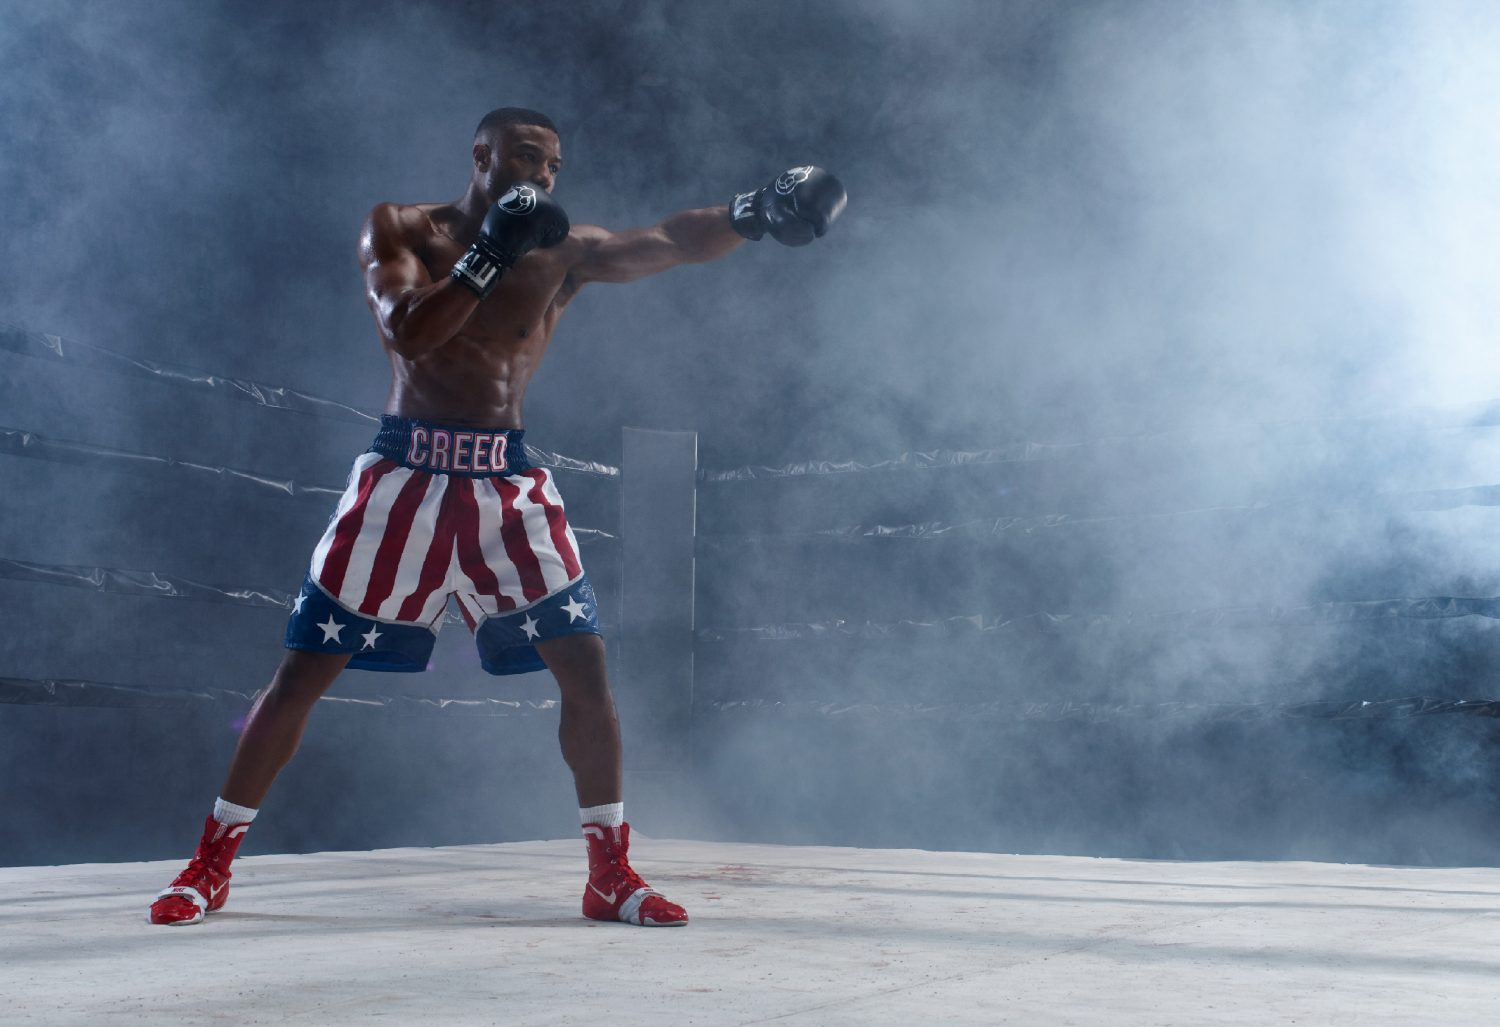 Crítica: Creed II (EUA, 2019)